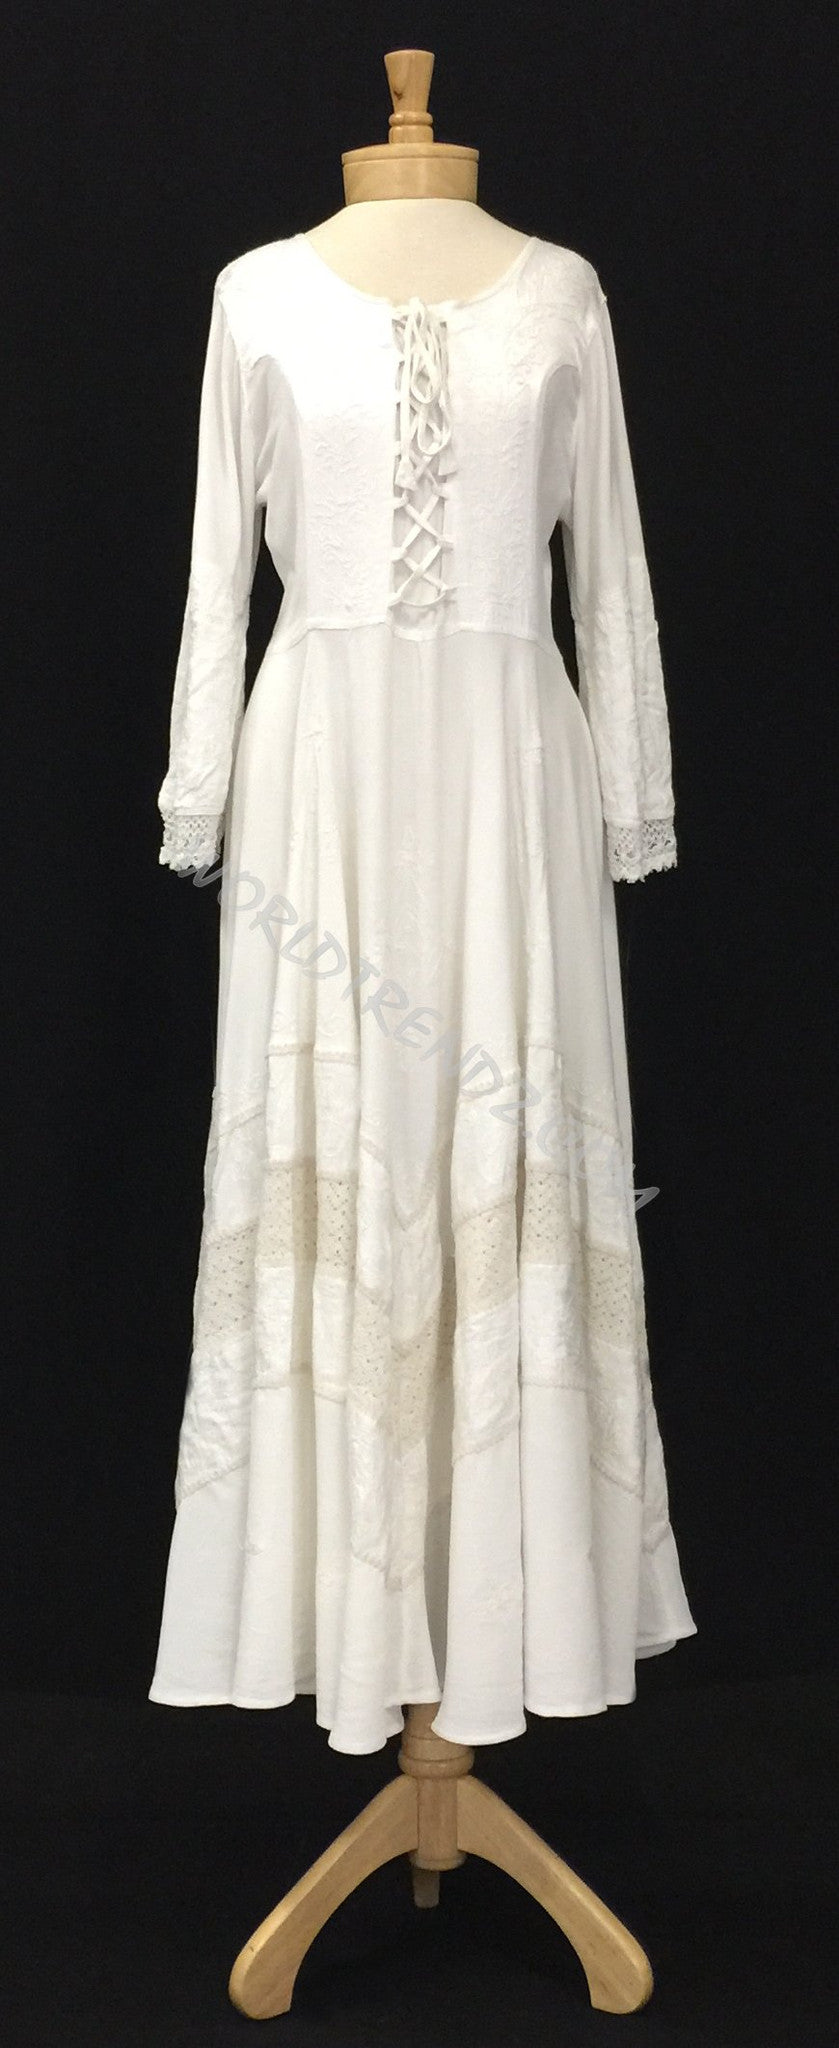 LACE-UP MEDIEVAL DRESS WHITE